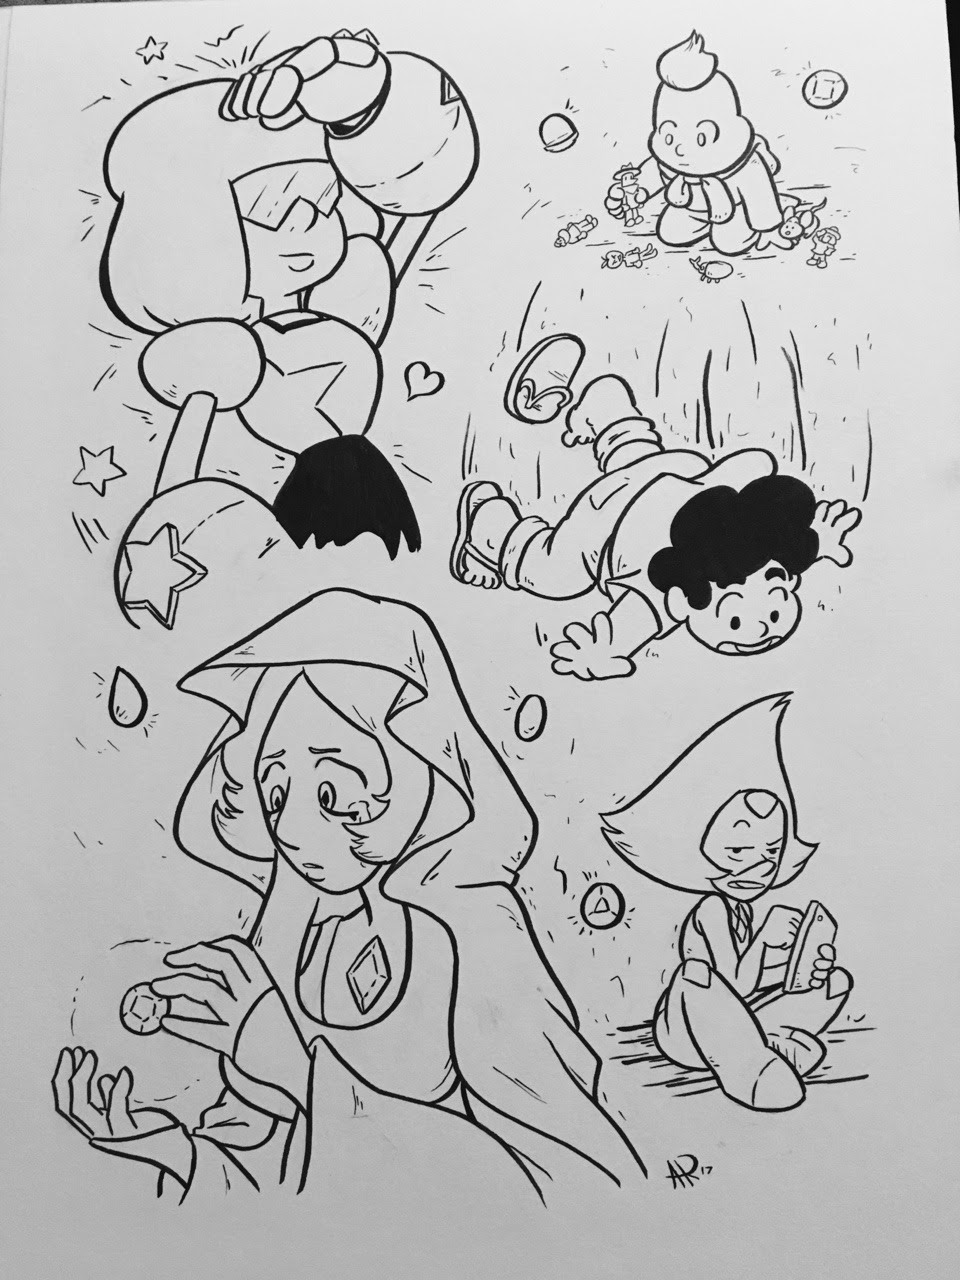 STEVEN SKETCH BOMB! 5 pages of Steven Universe sketches in 5 days